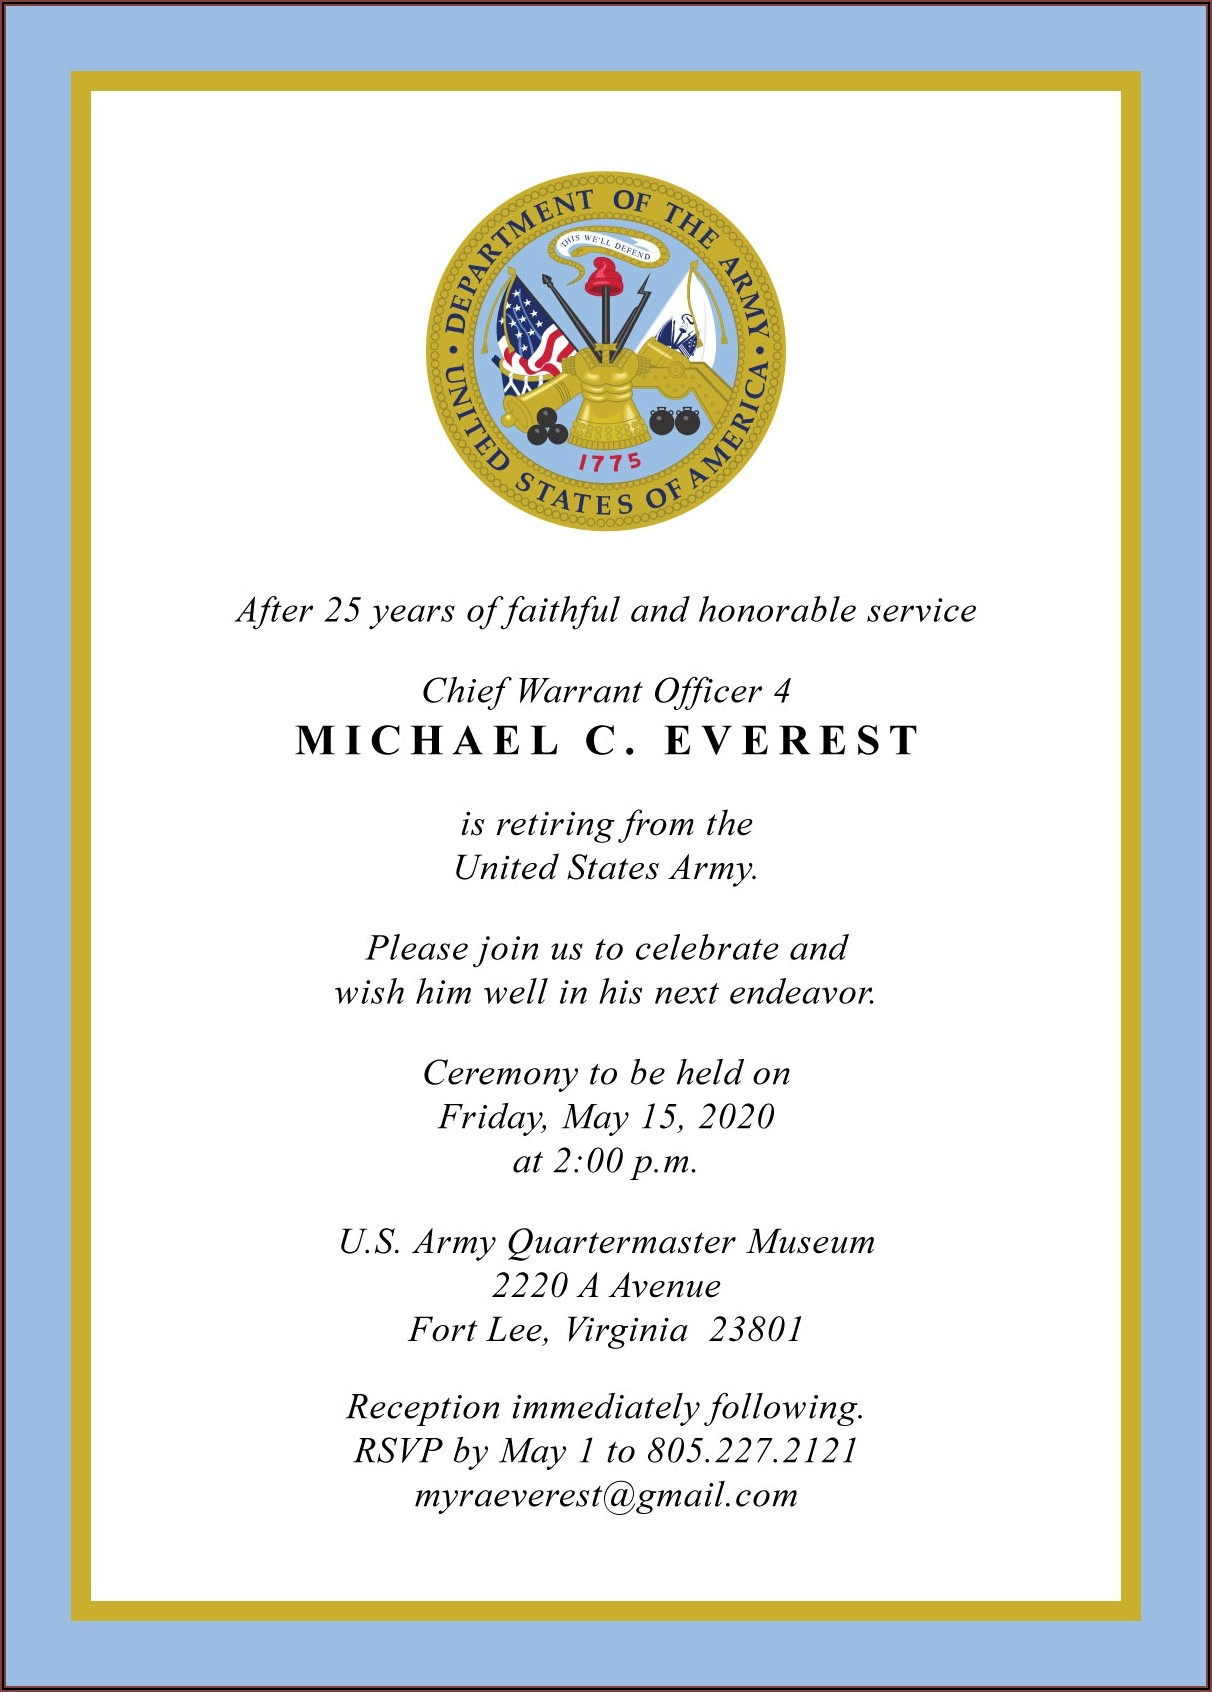 Military Retirement Ceremony Invitation Wording